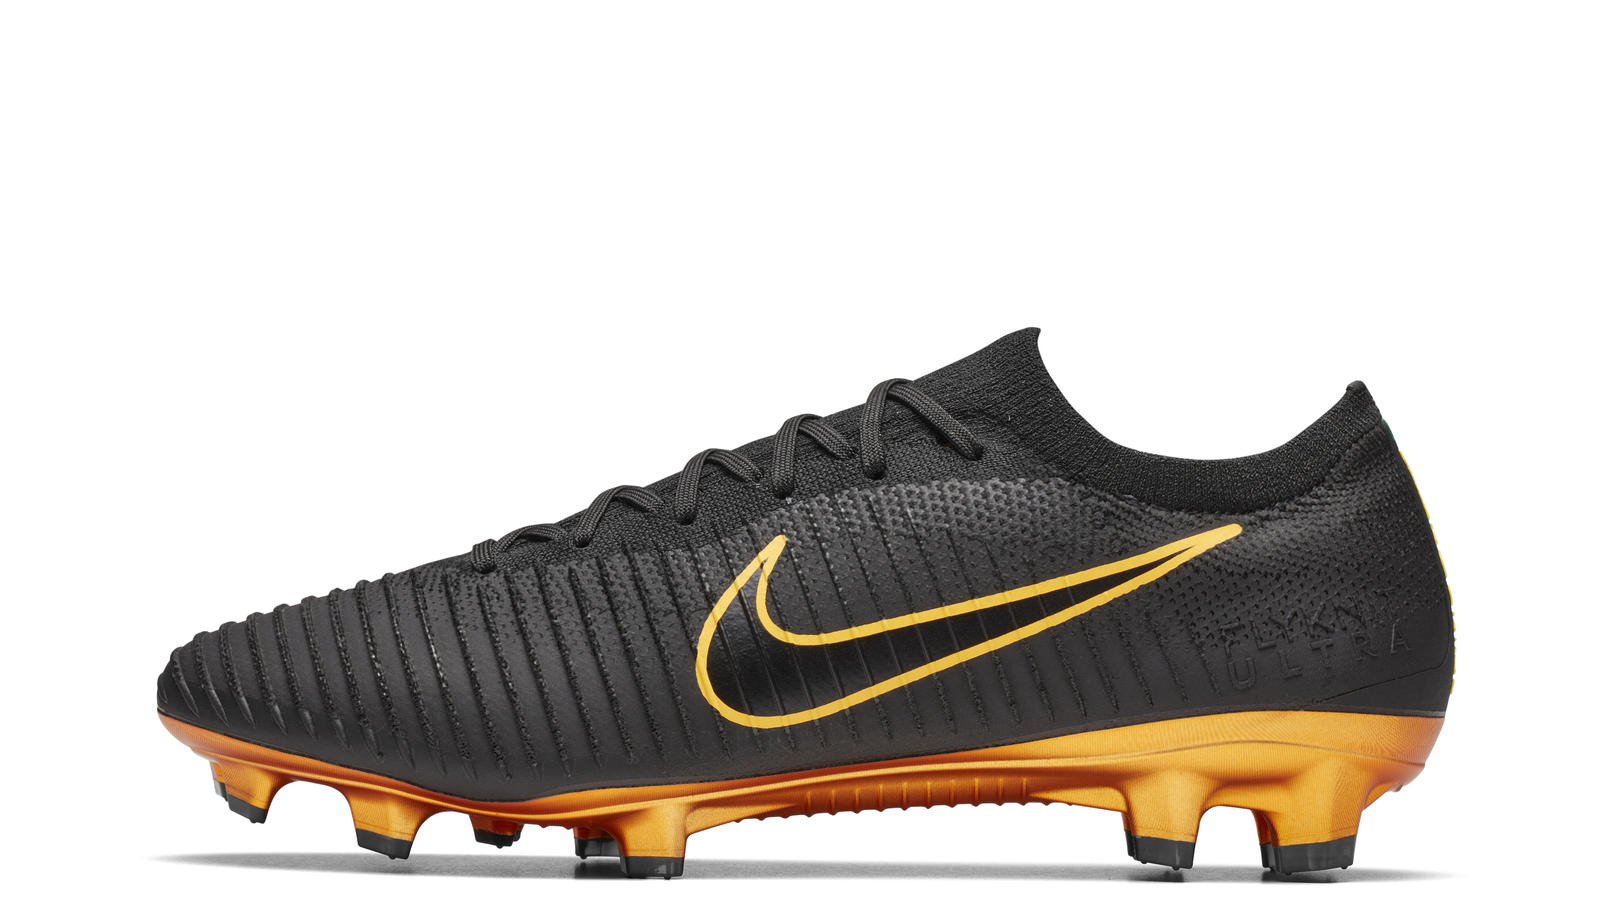 The all-new Nike Mercurial Ultra Flyknit Vapor